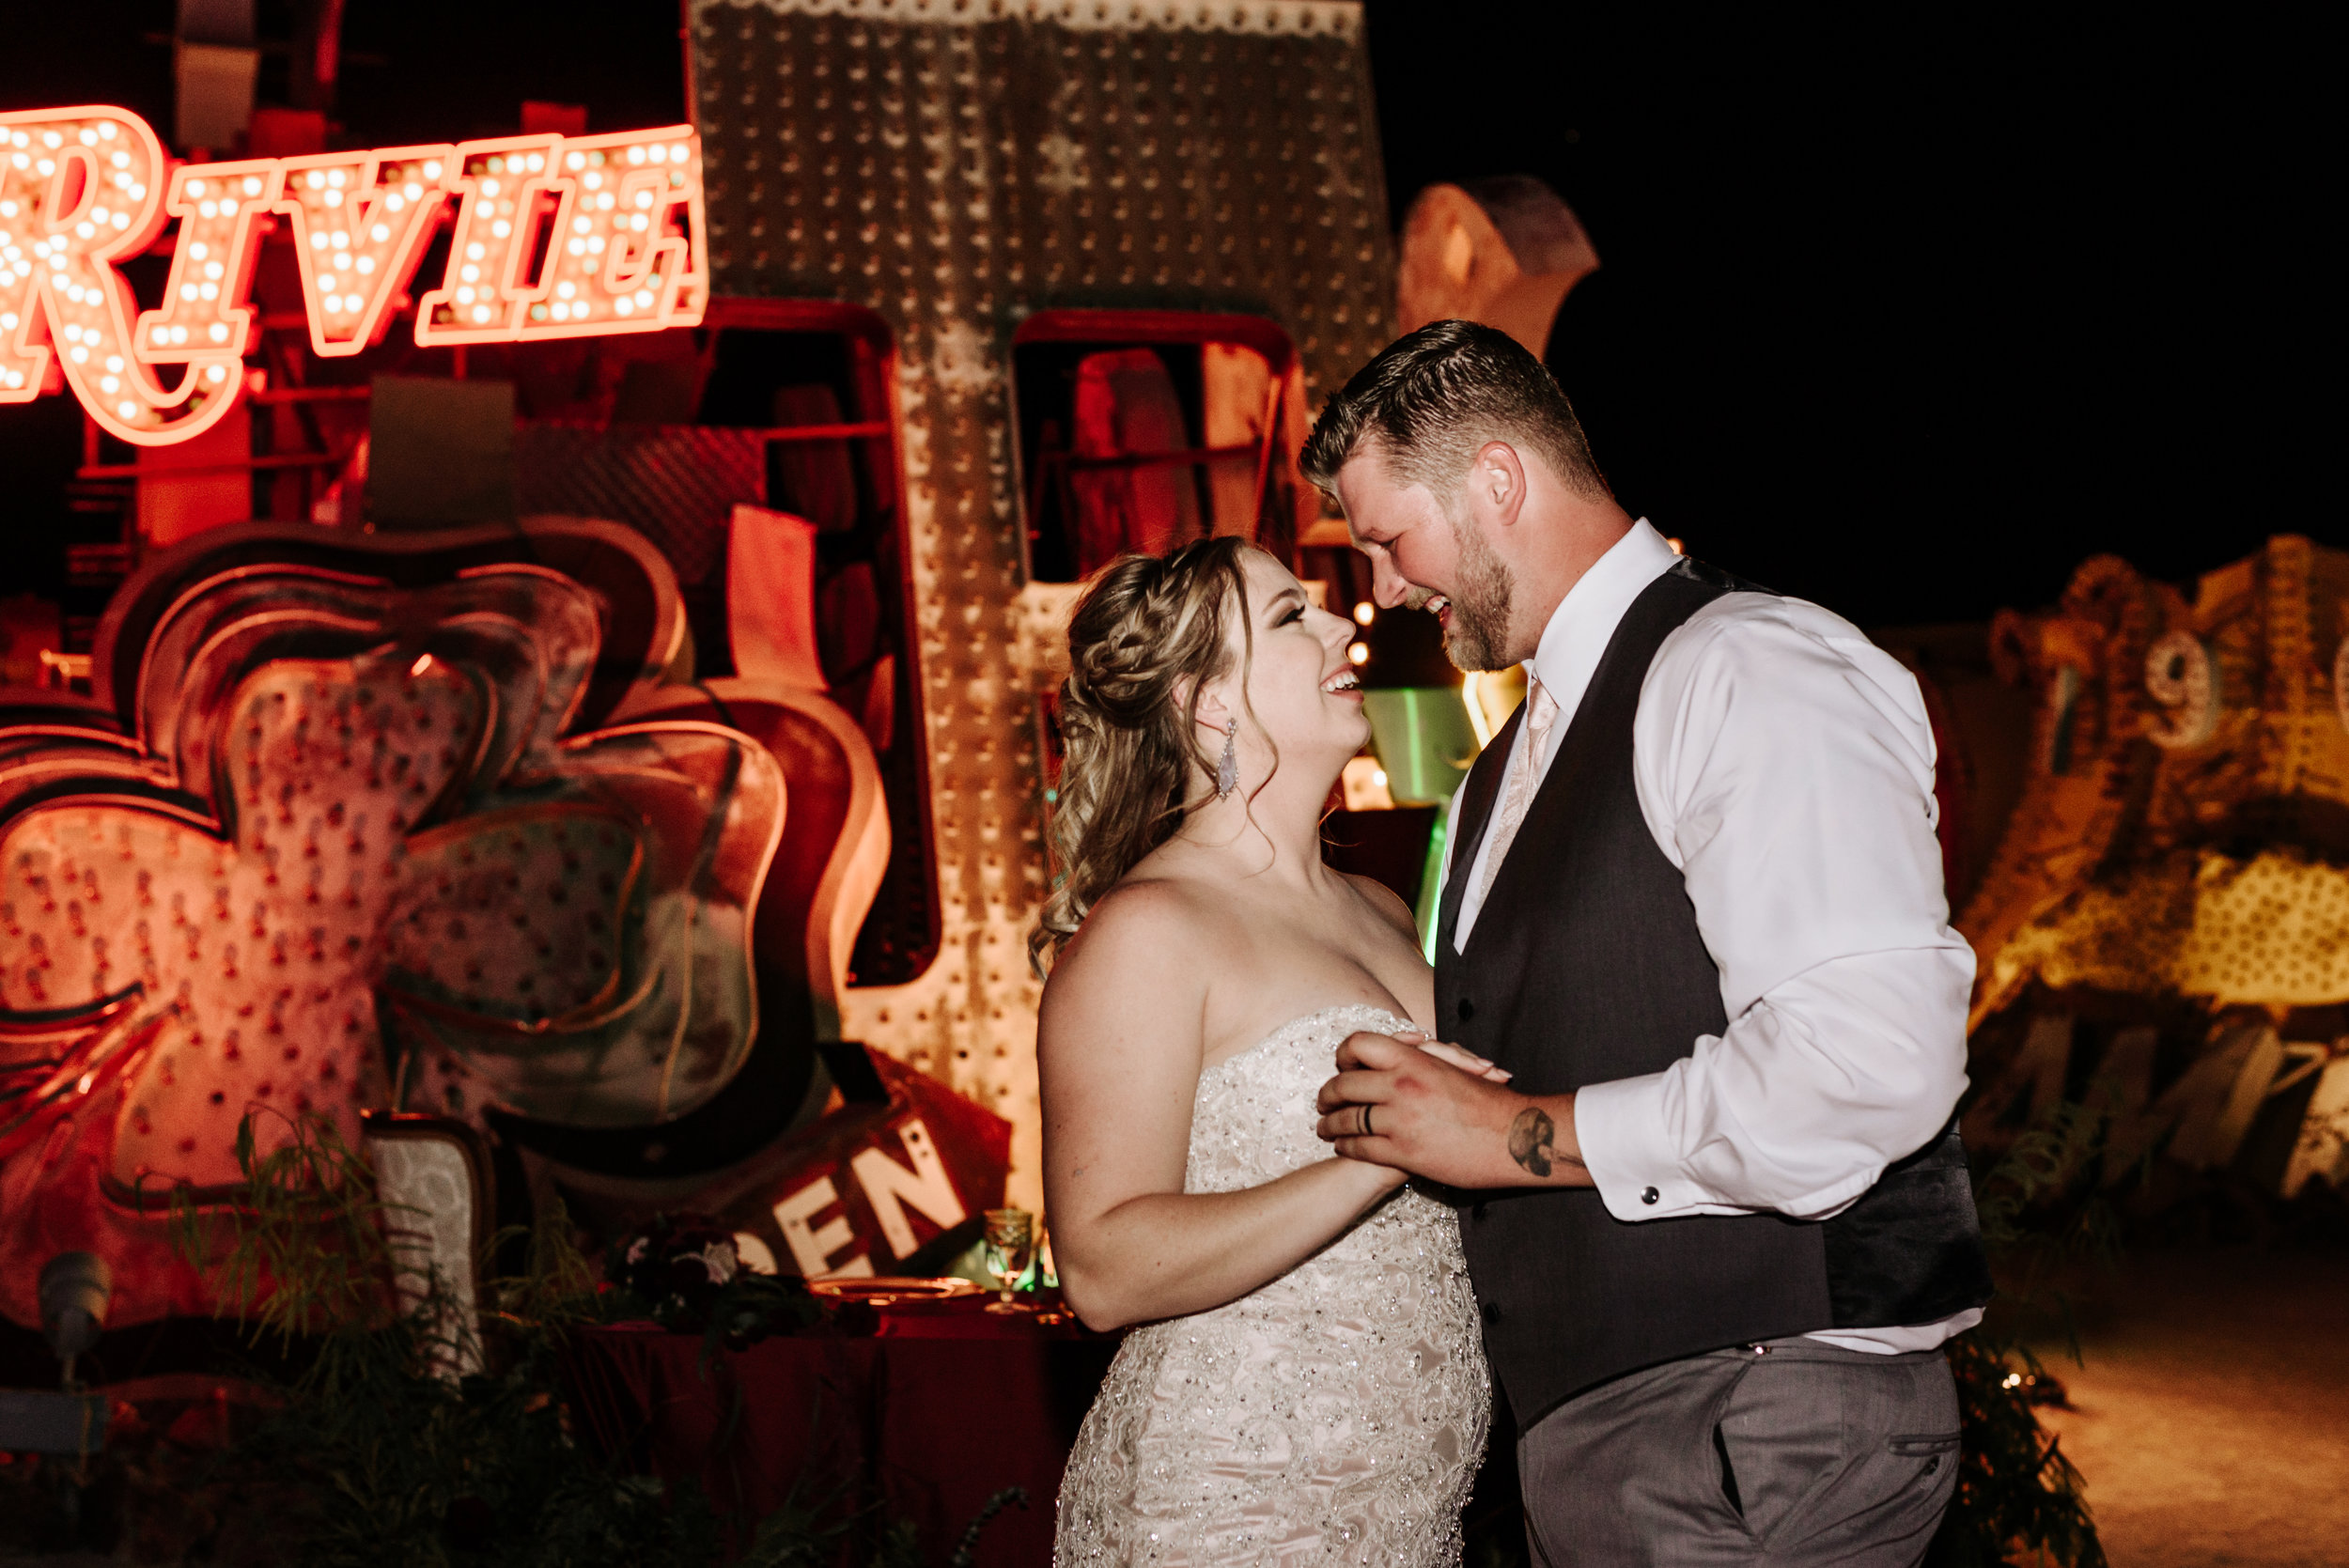 Neon-Museum-Wedding-Las-Vegas-Nevada-Golden-Nugget-Photography-by-V-Ally-and-Dan-7140.jpg